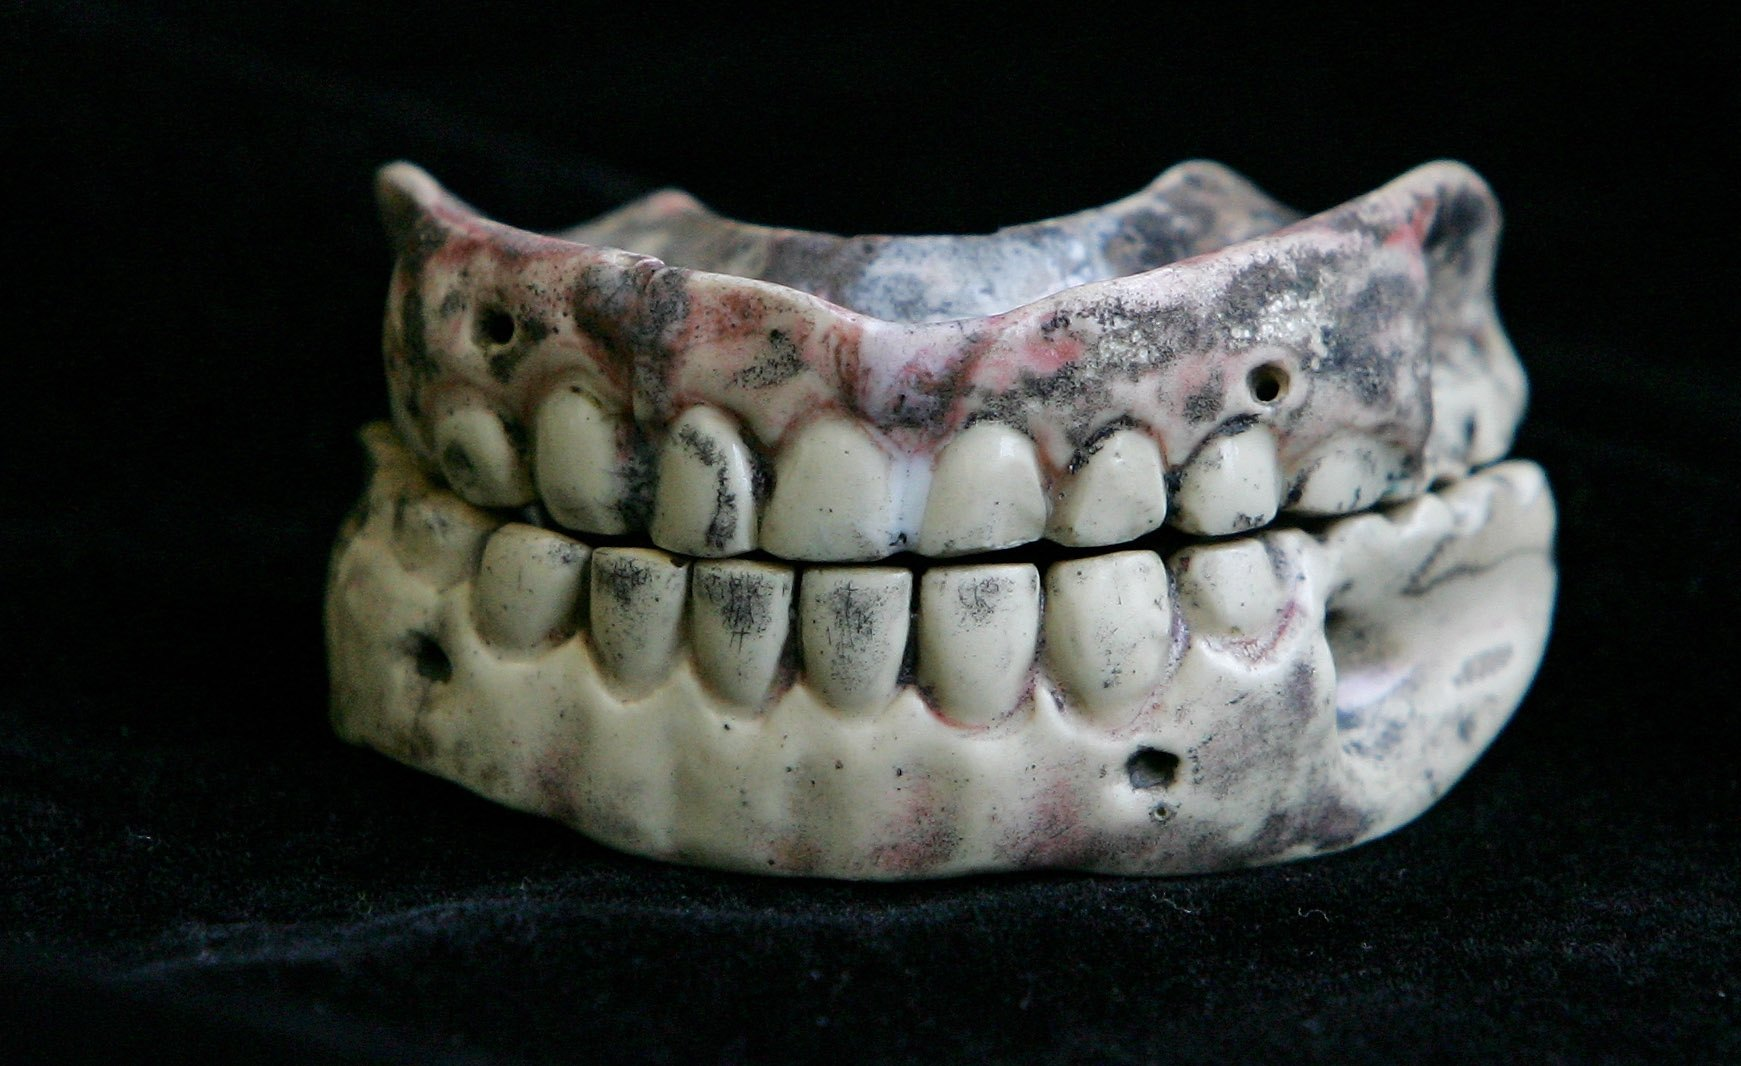 LONDON - OCTOBER 05: A set of 18th century dentures are prepared to go on public display for the first time at the Museum of London October 5, 2006 in London, England. The 200-year old set of false teeth belonged to Arthur Richard Dillon (1721-1806), Archbishop of Narbonne in France. Archaeologists discovered them, still in his mouth, when they opened his coffin in London's St Pancras graveyard during excavations in advance of construction work at the Channel Tunnel Rail Link's new London terminus. (Photo by Scott Barbour/Getty Images)